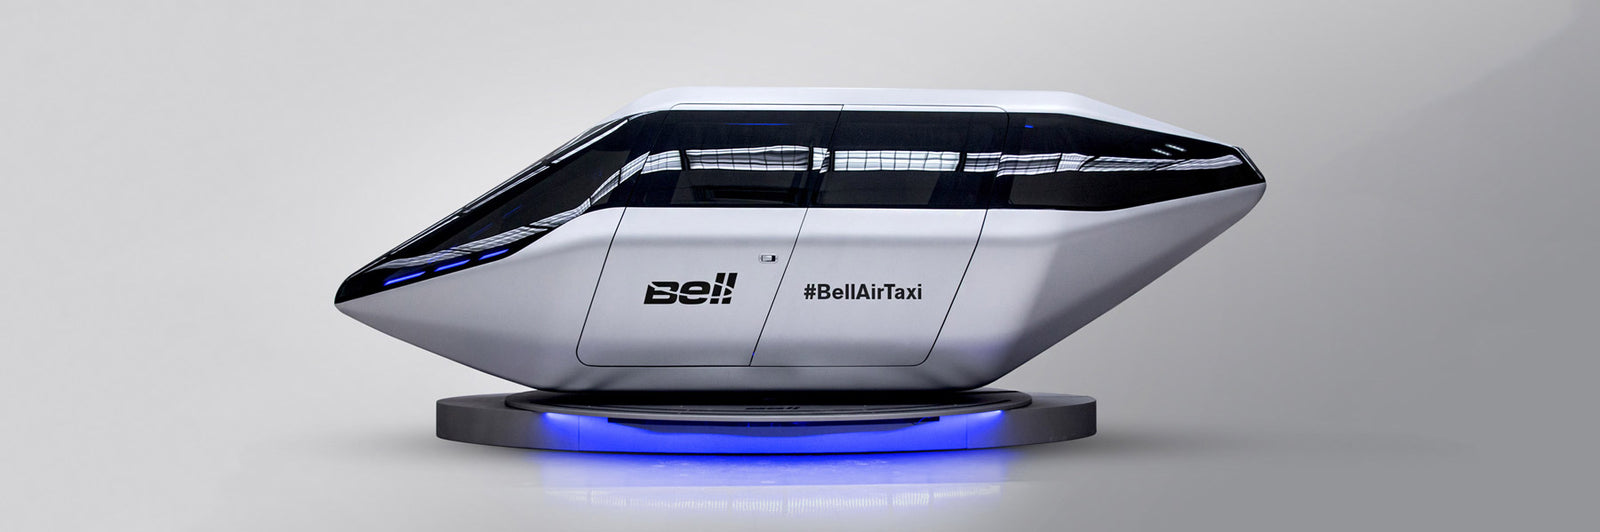 Bell Air Taxi Lands in CES Las Vegas